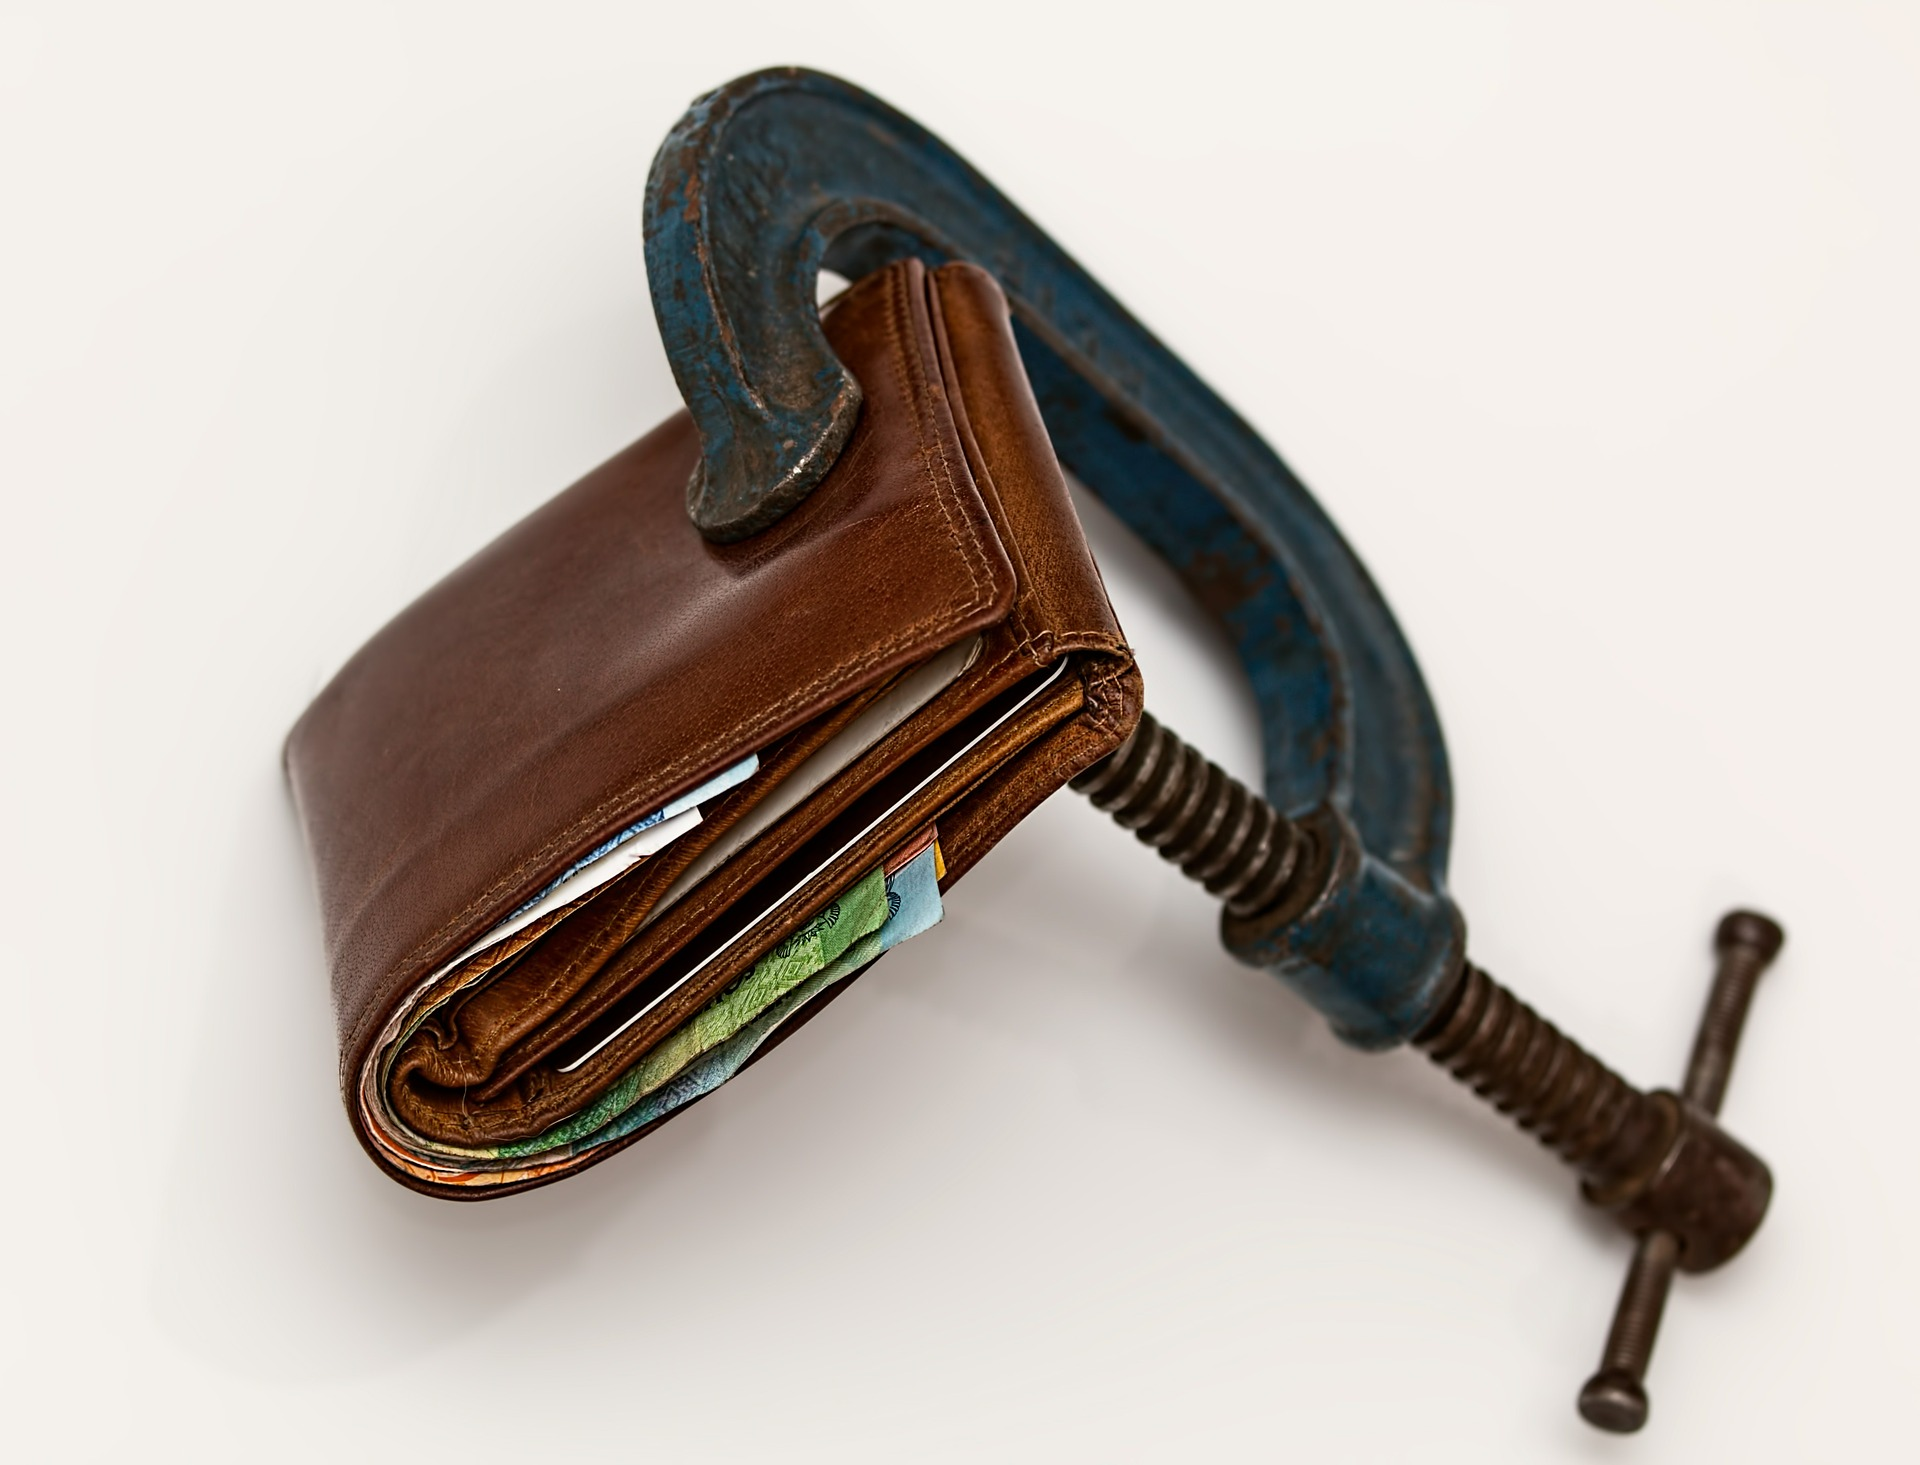 Do you have enough cash on hand to cover the bills and recurring expenses?